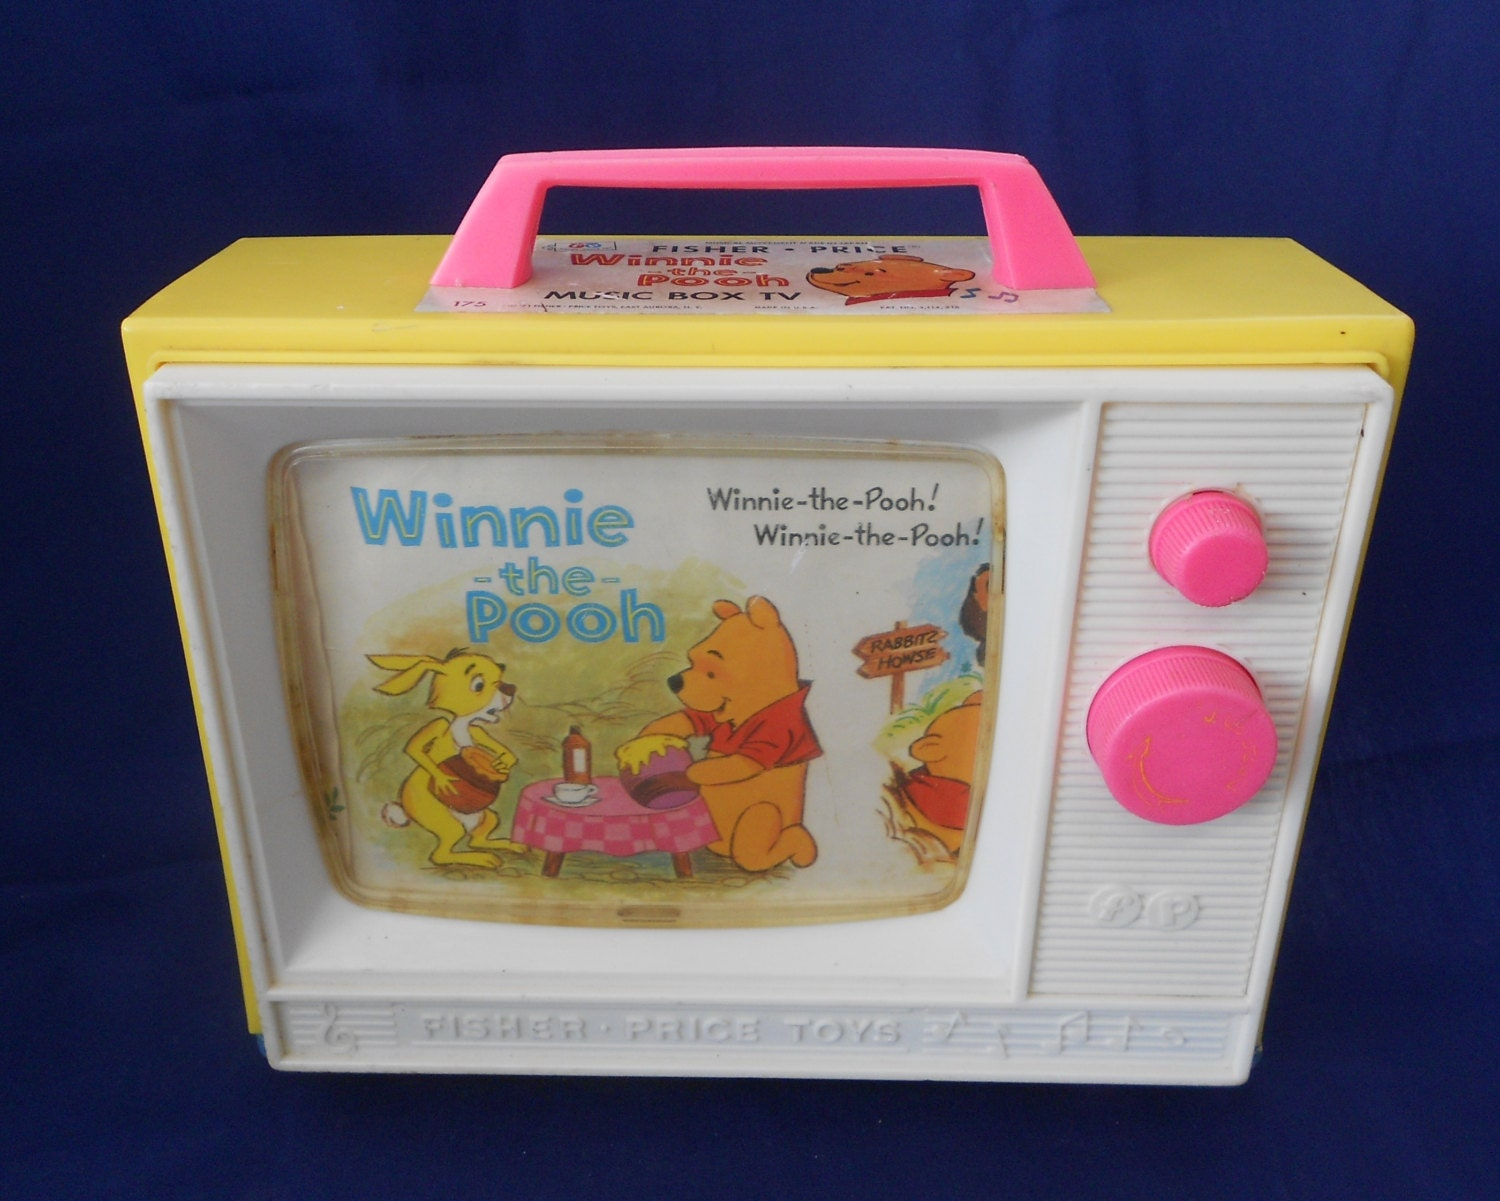 Fisher Price Toys Winnie The Pooh Music Box Tv 1971 Walt